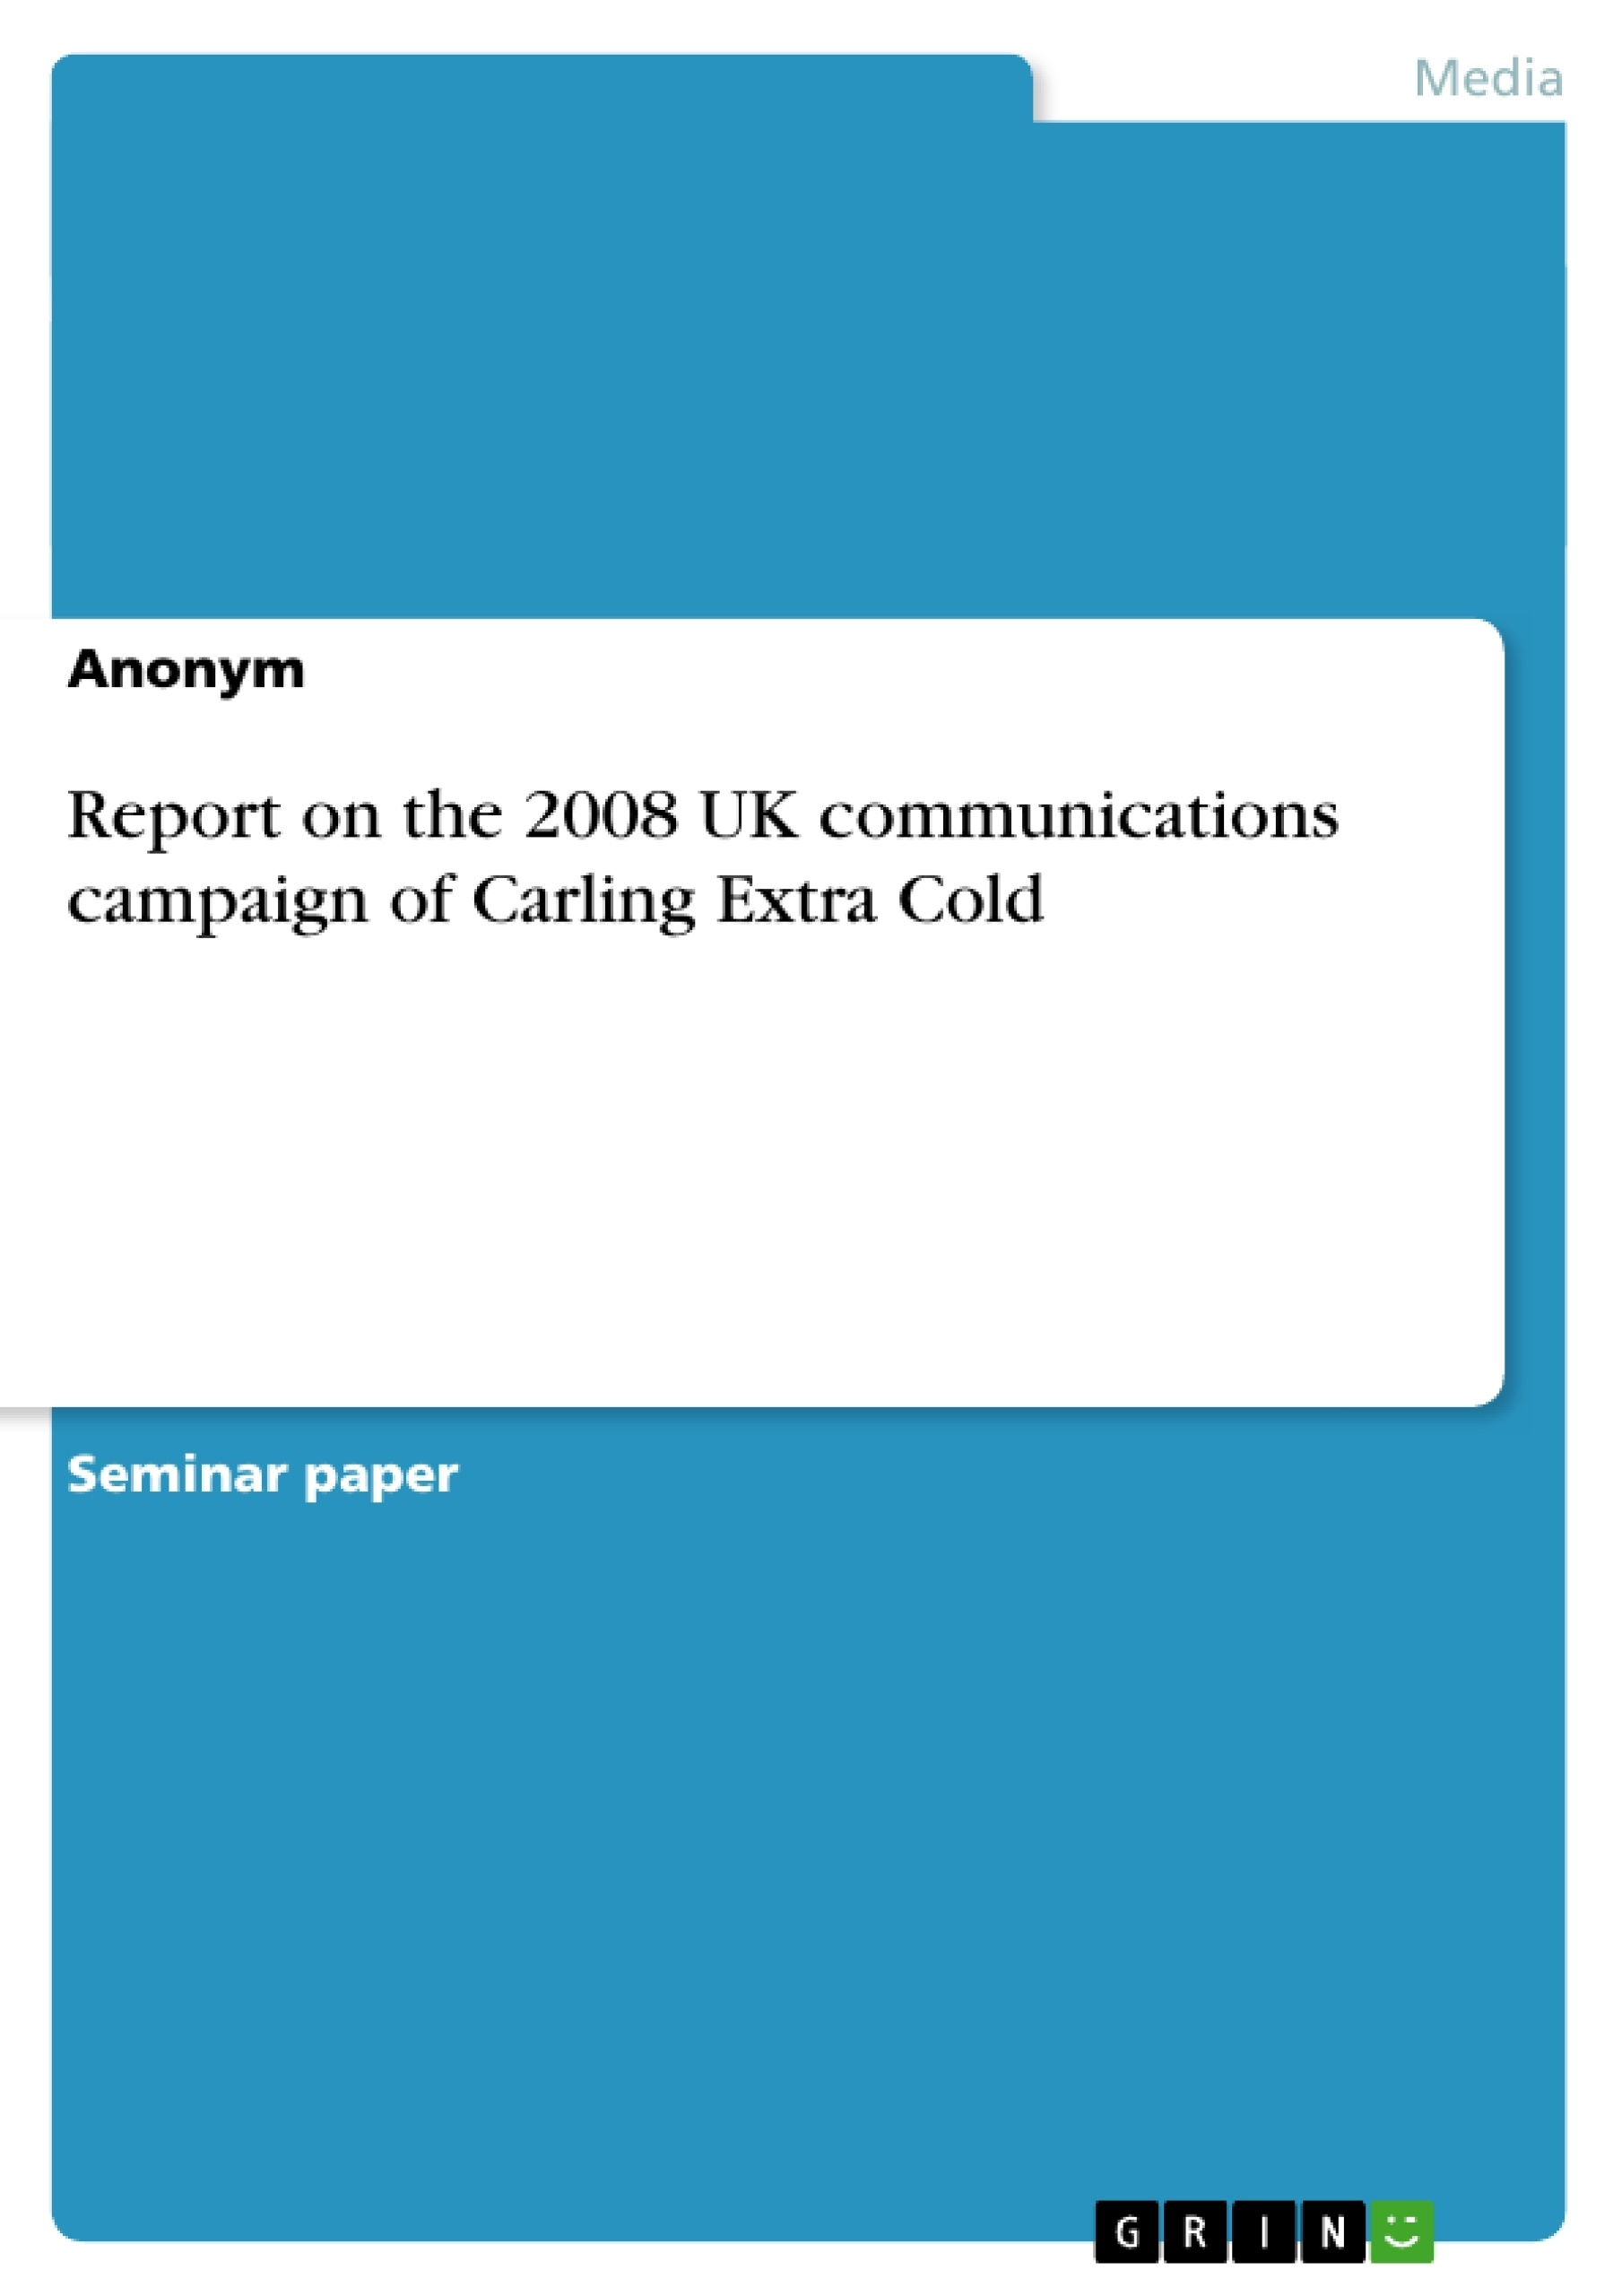 Title: Report on the 2008 UK communications campaign of Carling Extra Cold